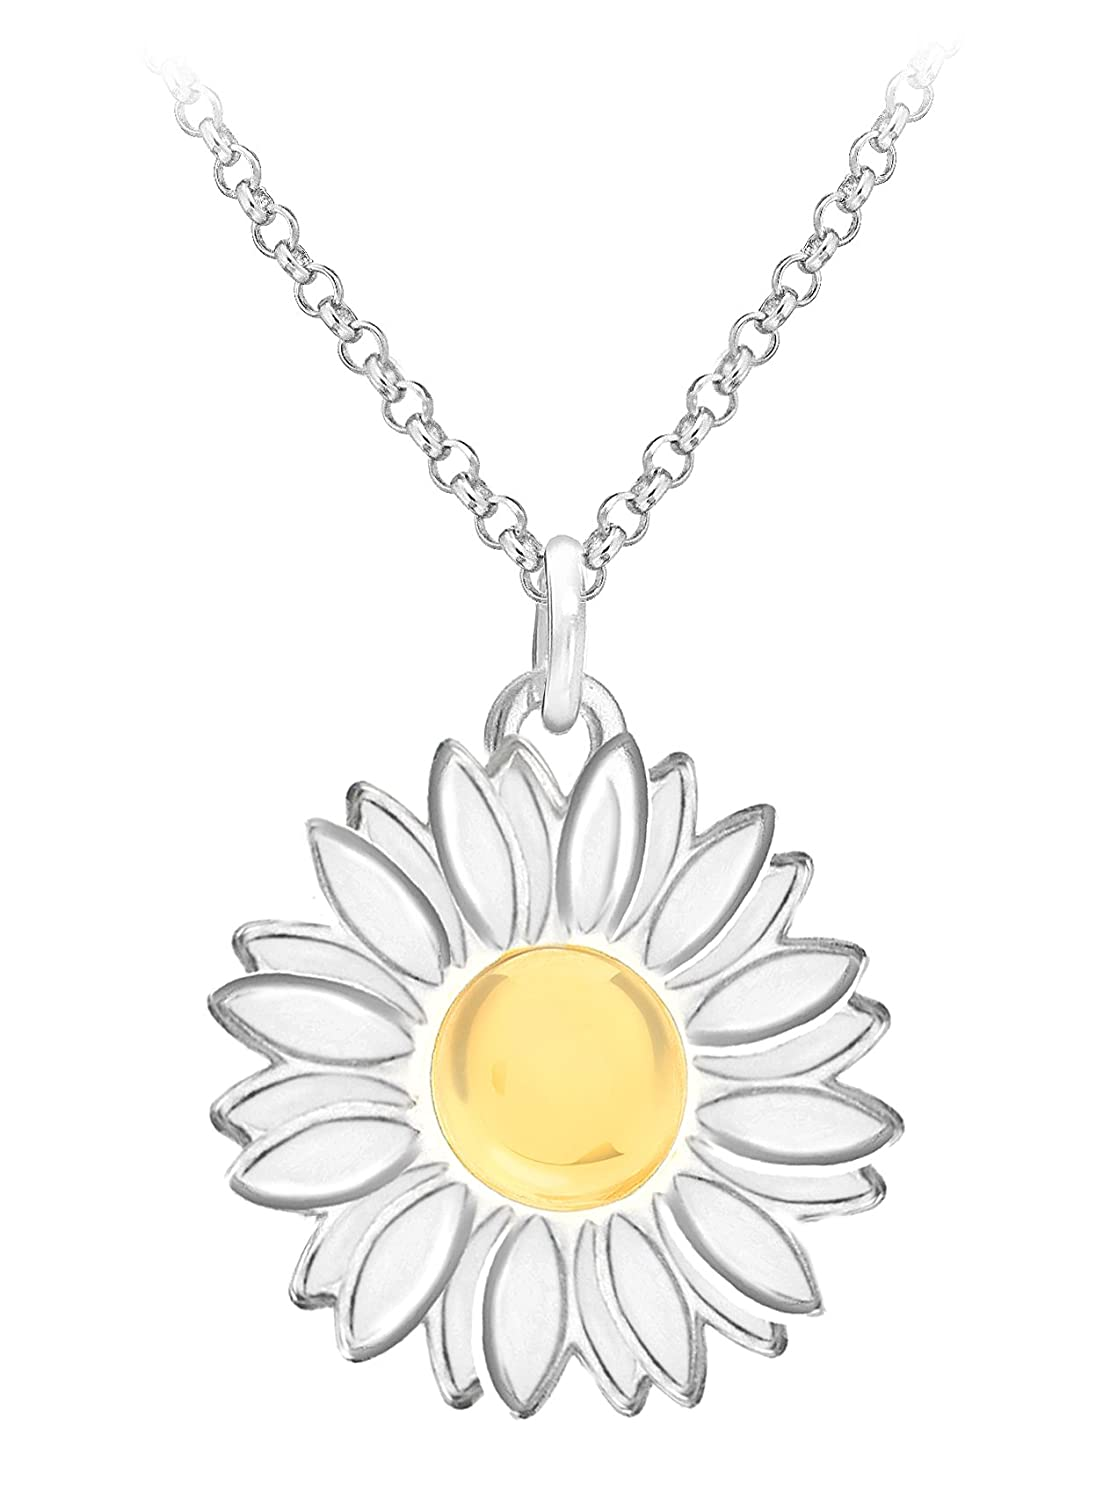 jenna daisy products silv dsy necklace pendant clifford